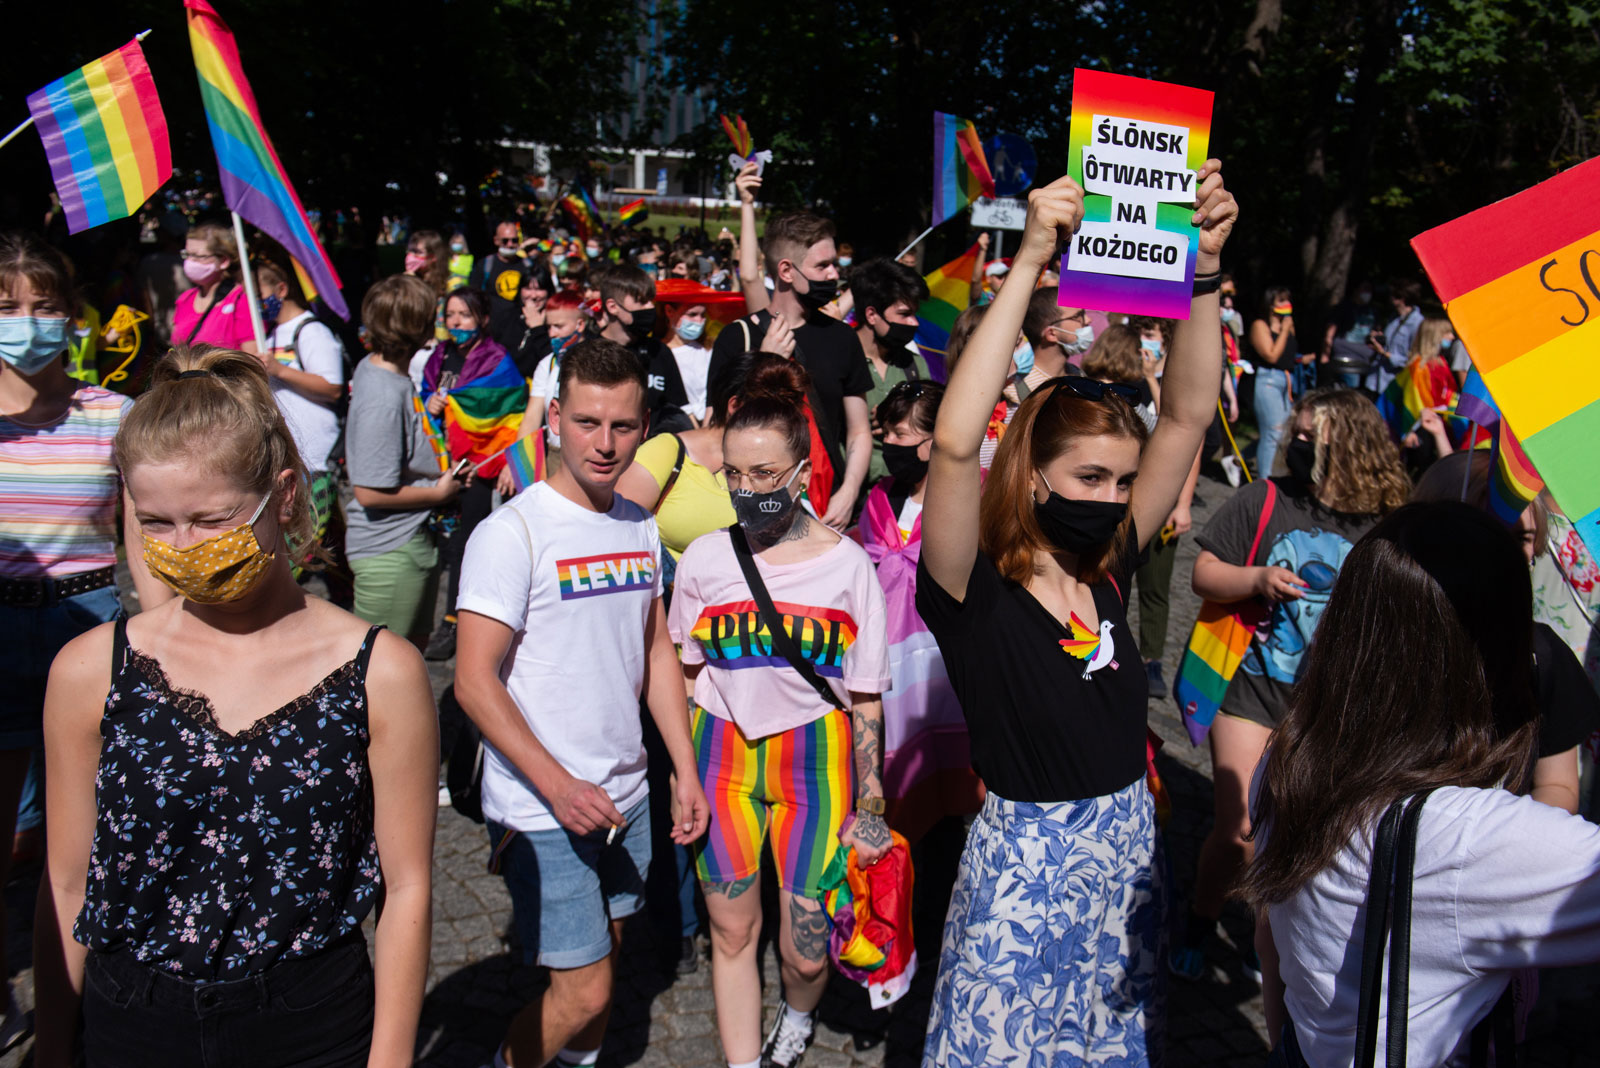 In Poland's 'LGBT-free zones,' existing is an act of defiance - C'mon » TikTokJa Video Downloader